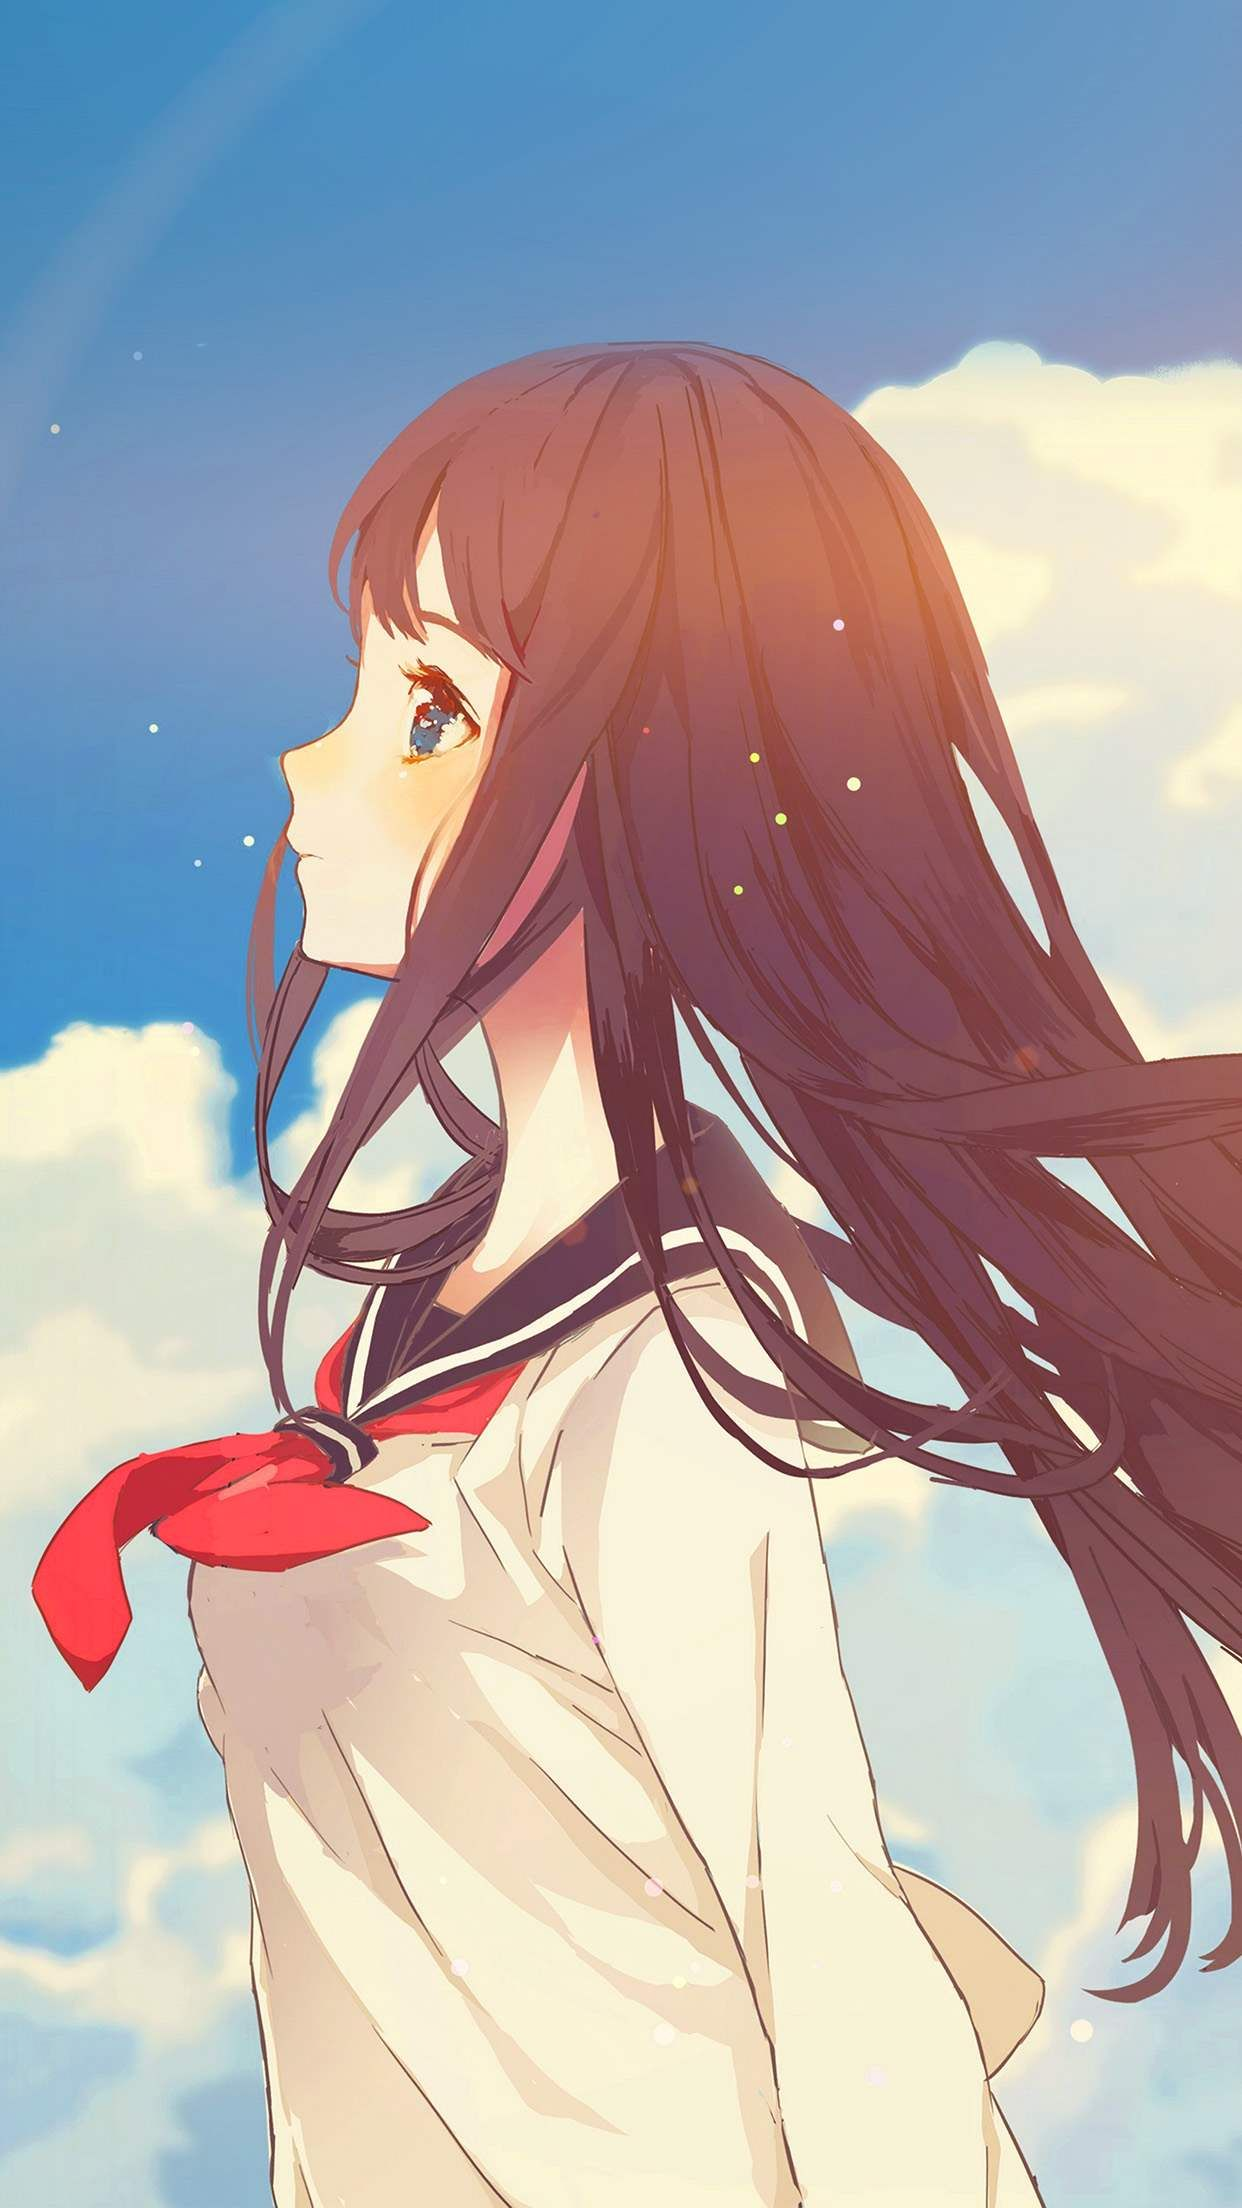 Download Mega Collection Of Cool Iphone Wallpapers Cute Girl